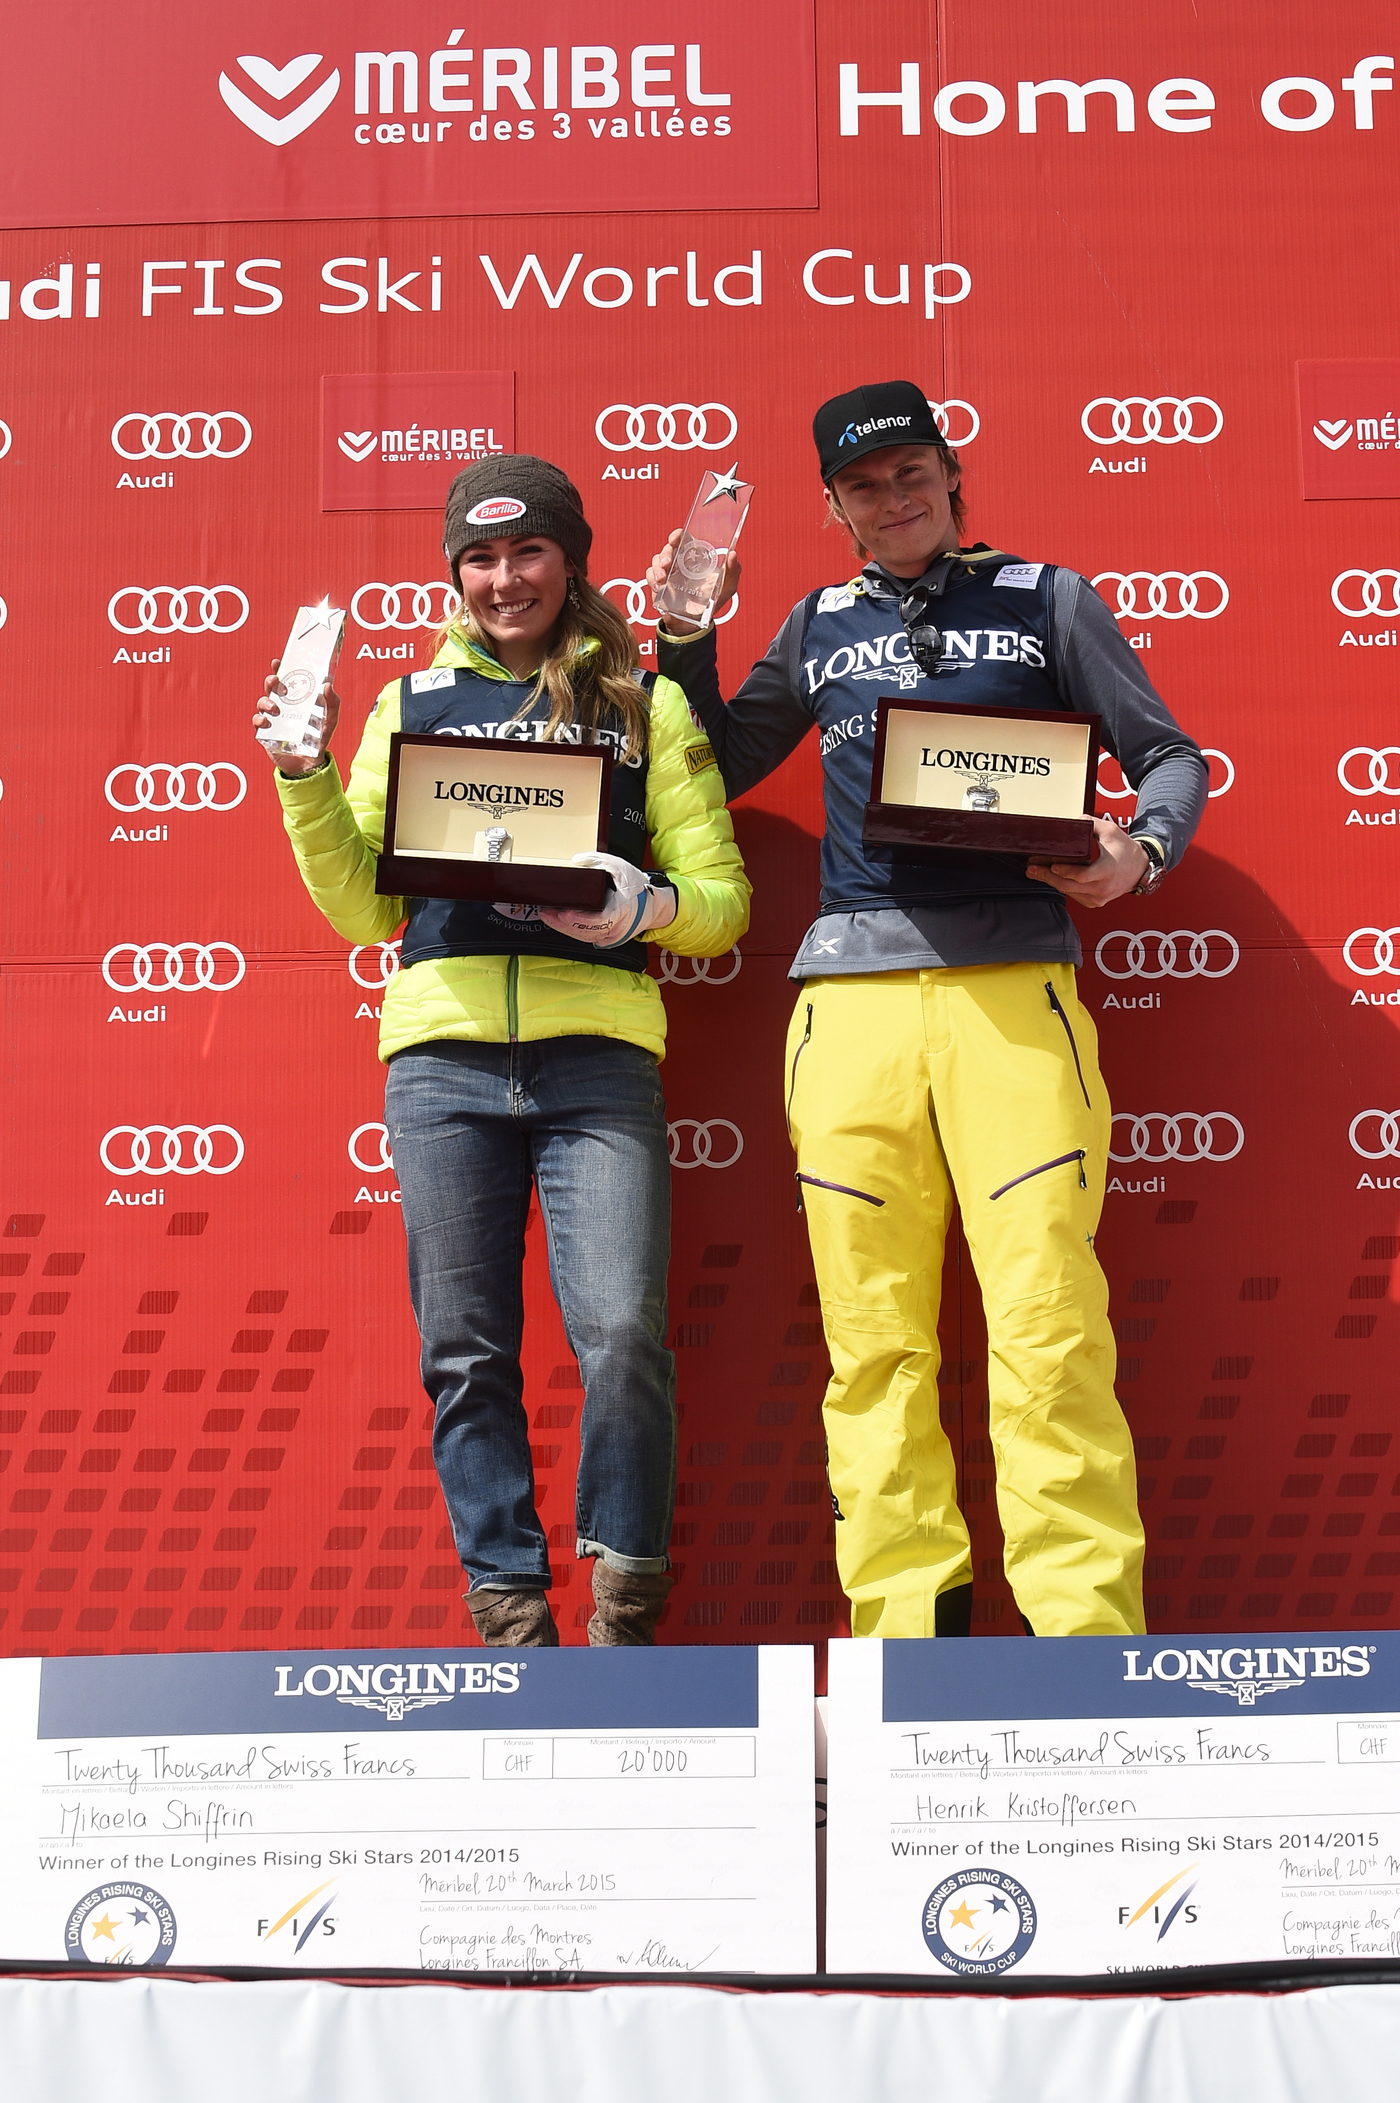 Longines Alpine Skiing Event: Longines awards the Longines Rising Ski Stars Prize to Mikaela Shiffrin and Henrik Kristoffersen 2